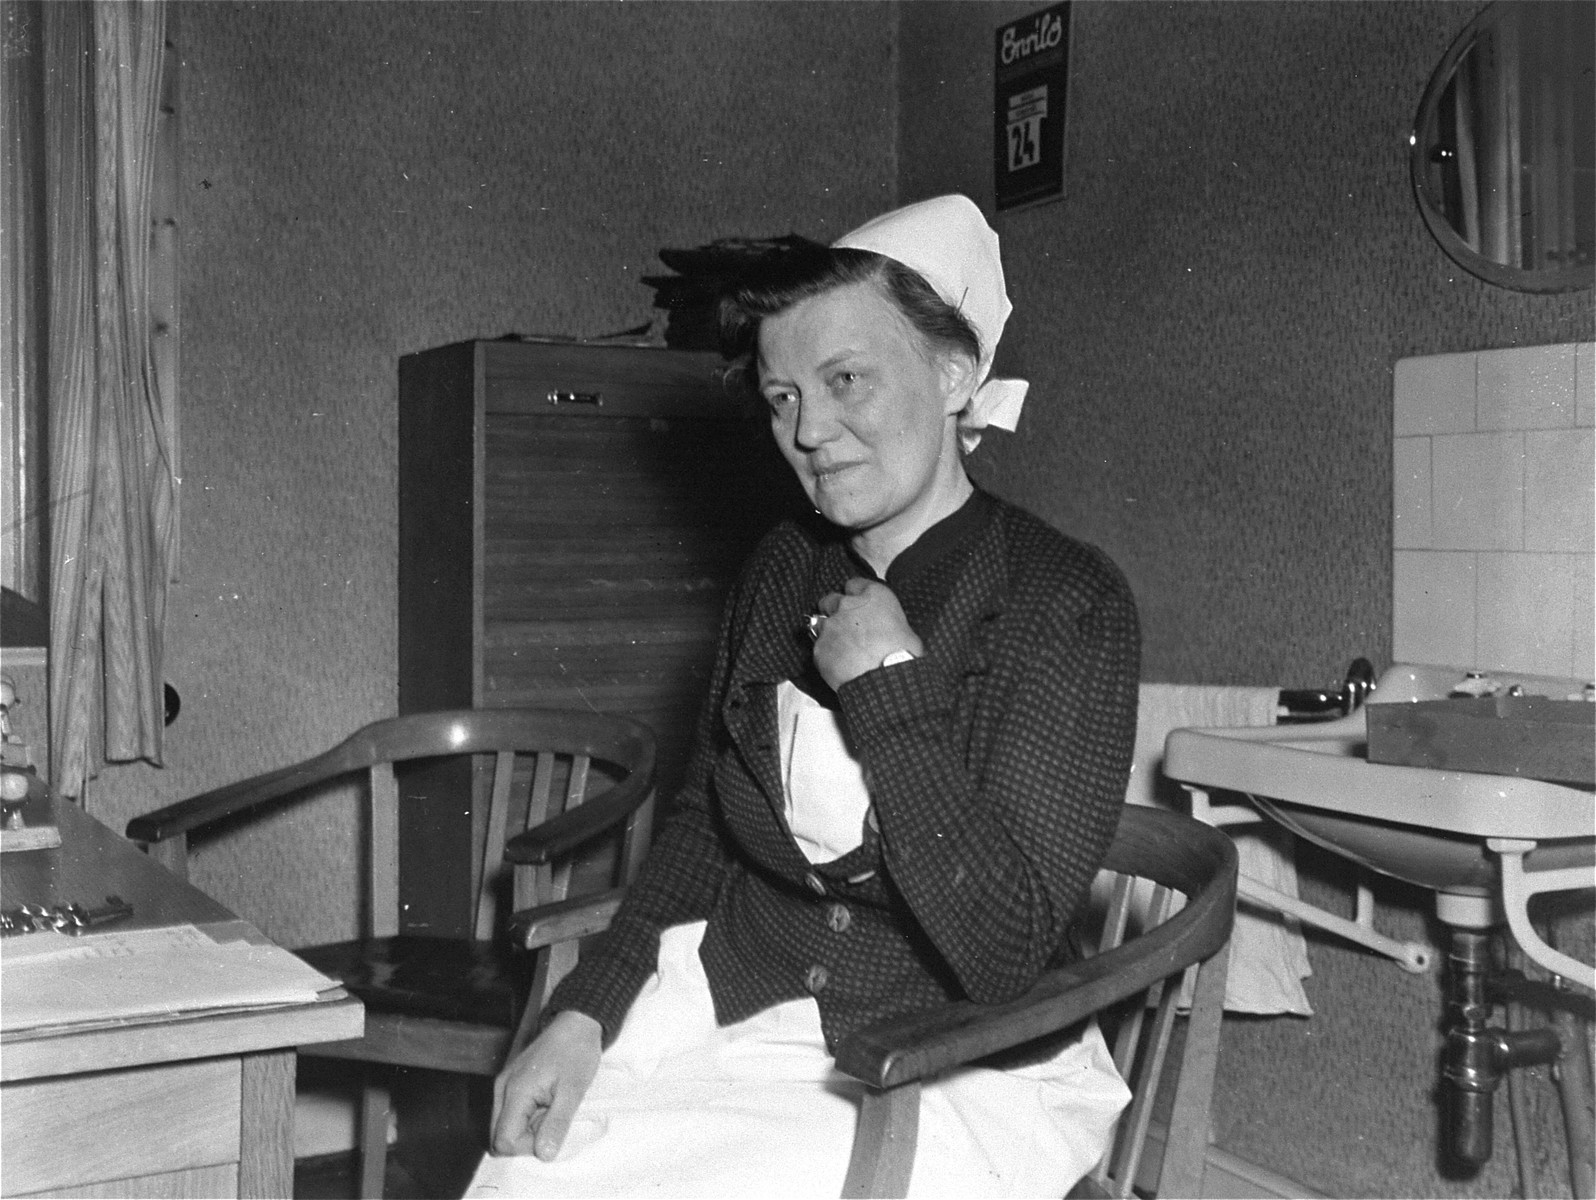 Portrait of Irmgard Huber, chief nurse at the Hadamar Institute, in her office.  The photograph was taken by an American military photographer soon after the liberation.